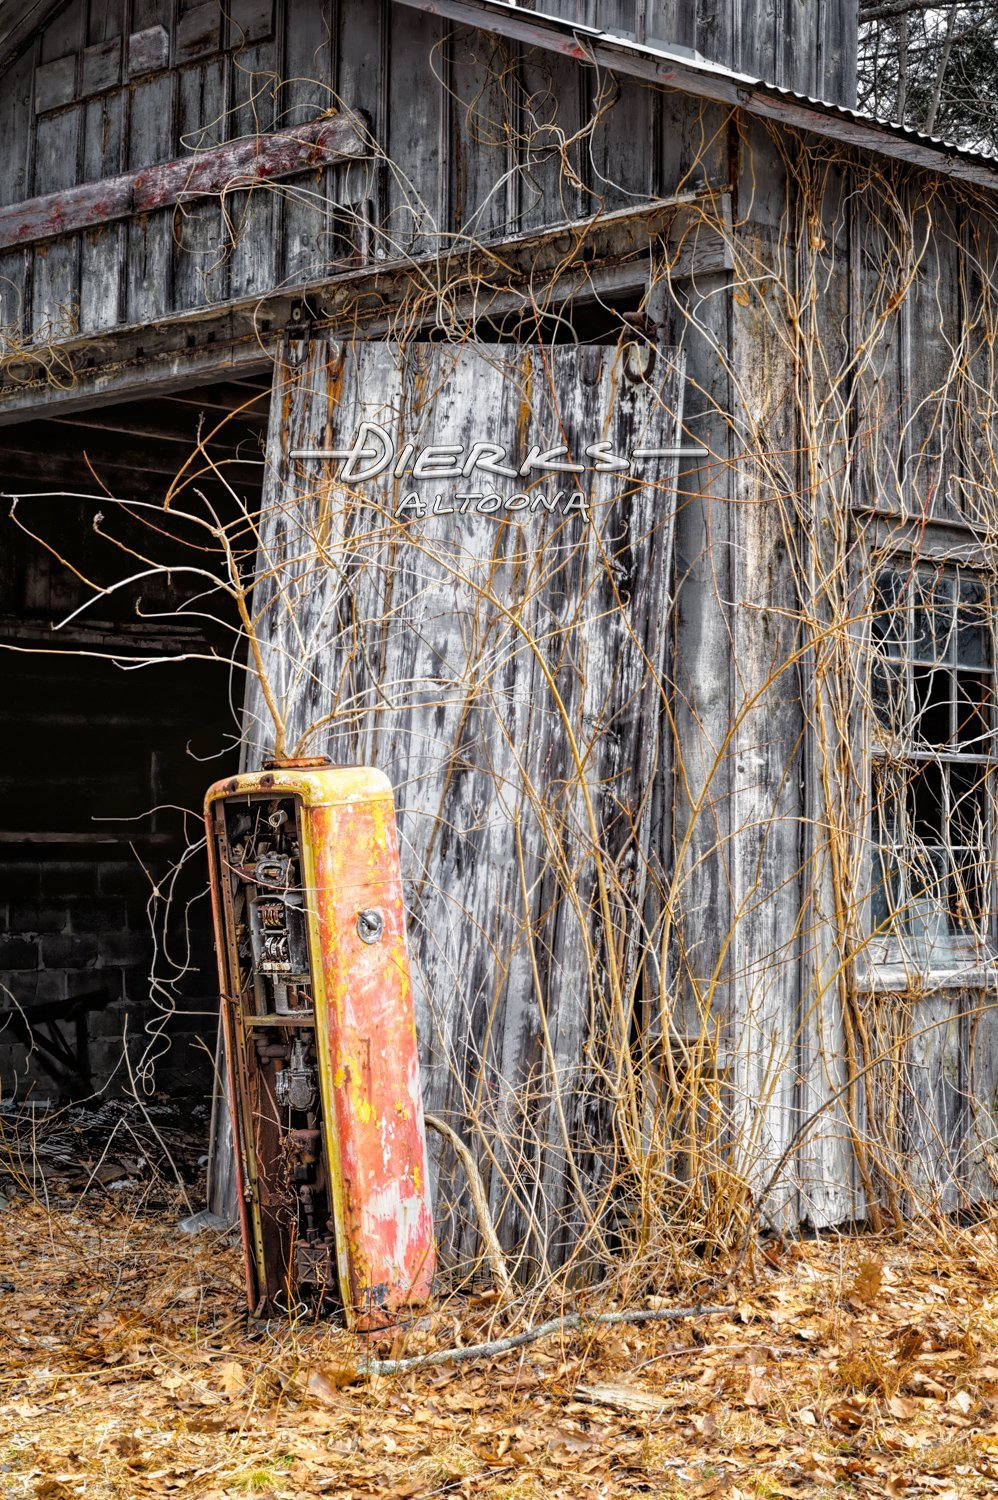 Gas Pump Very Overgrown and Abandoned